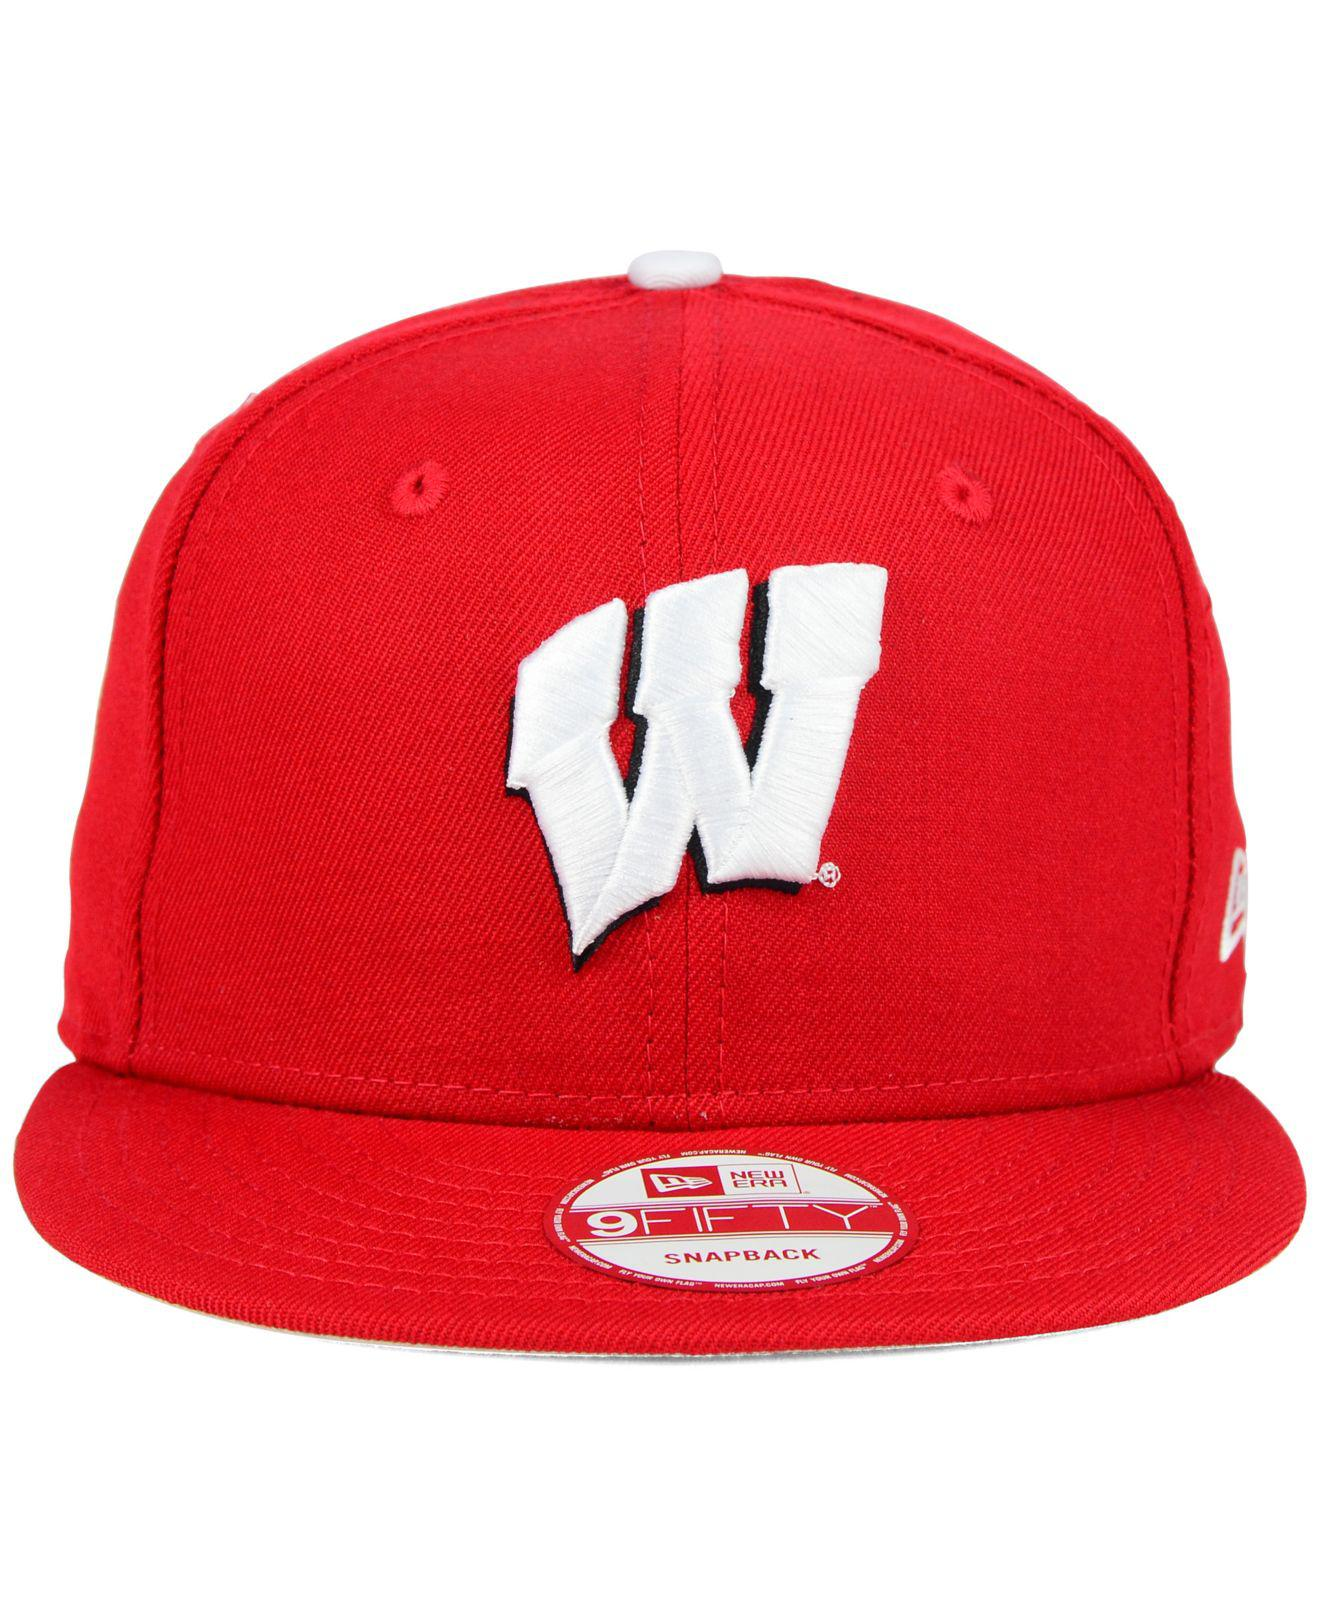 quality design ea9e2 4e8d7 Lyst - KTZ Wisconsin Badgers Core 9fifty Snapback Cap in Red for Men